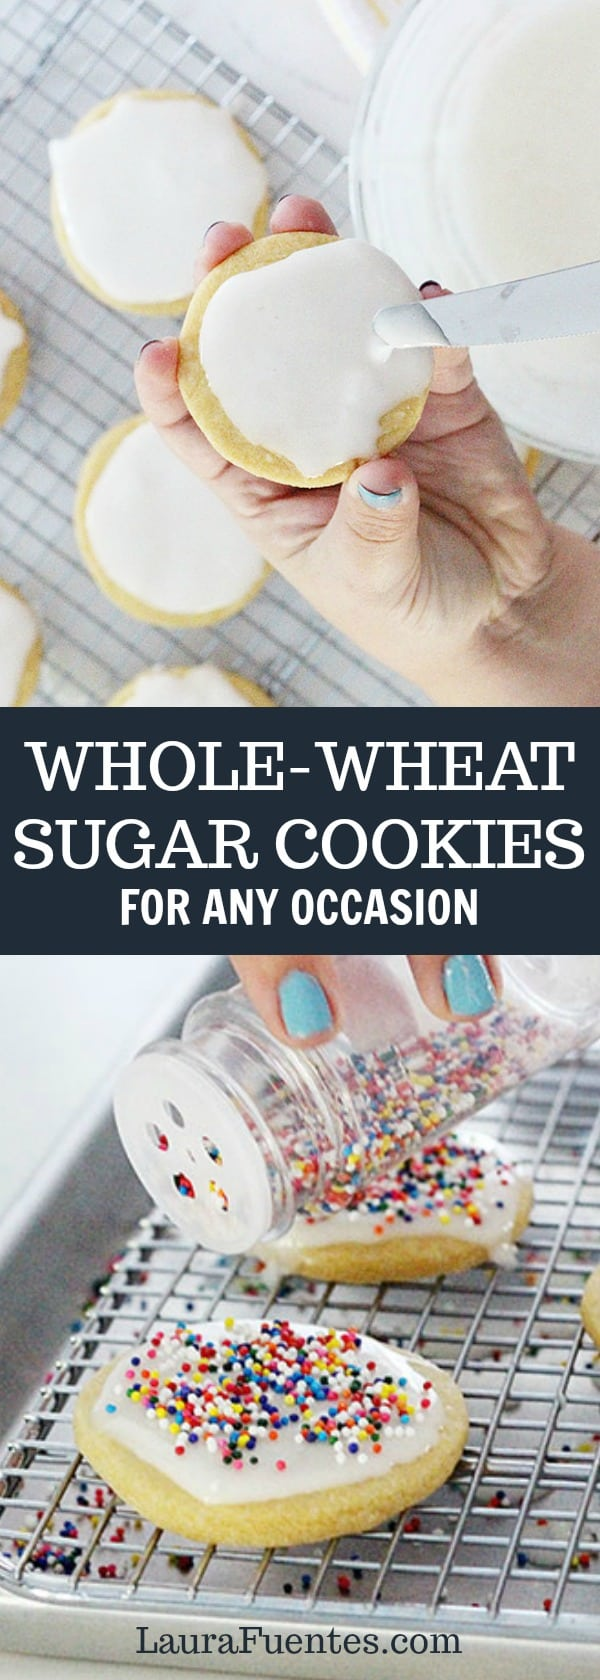 whole wheat sugar cookie recipe that is easy to make and can be cut out and frosted for any occasion